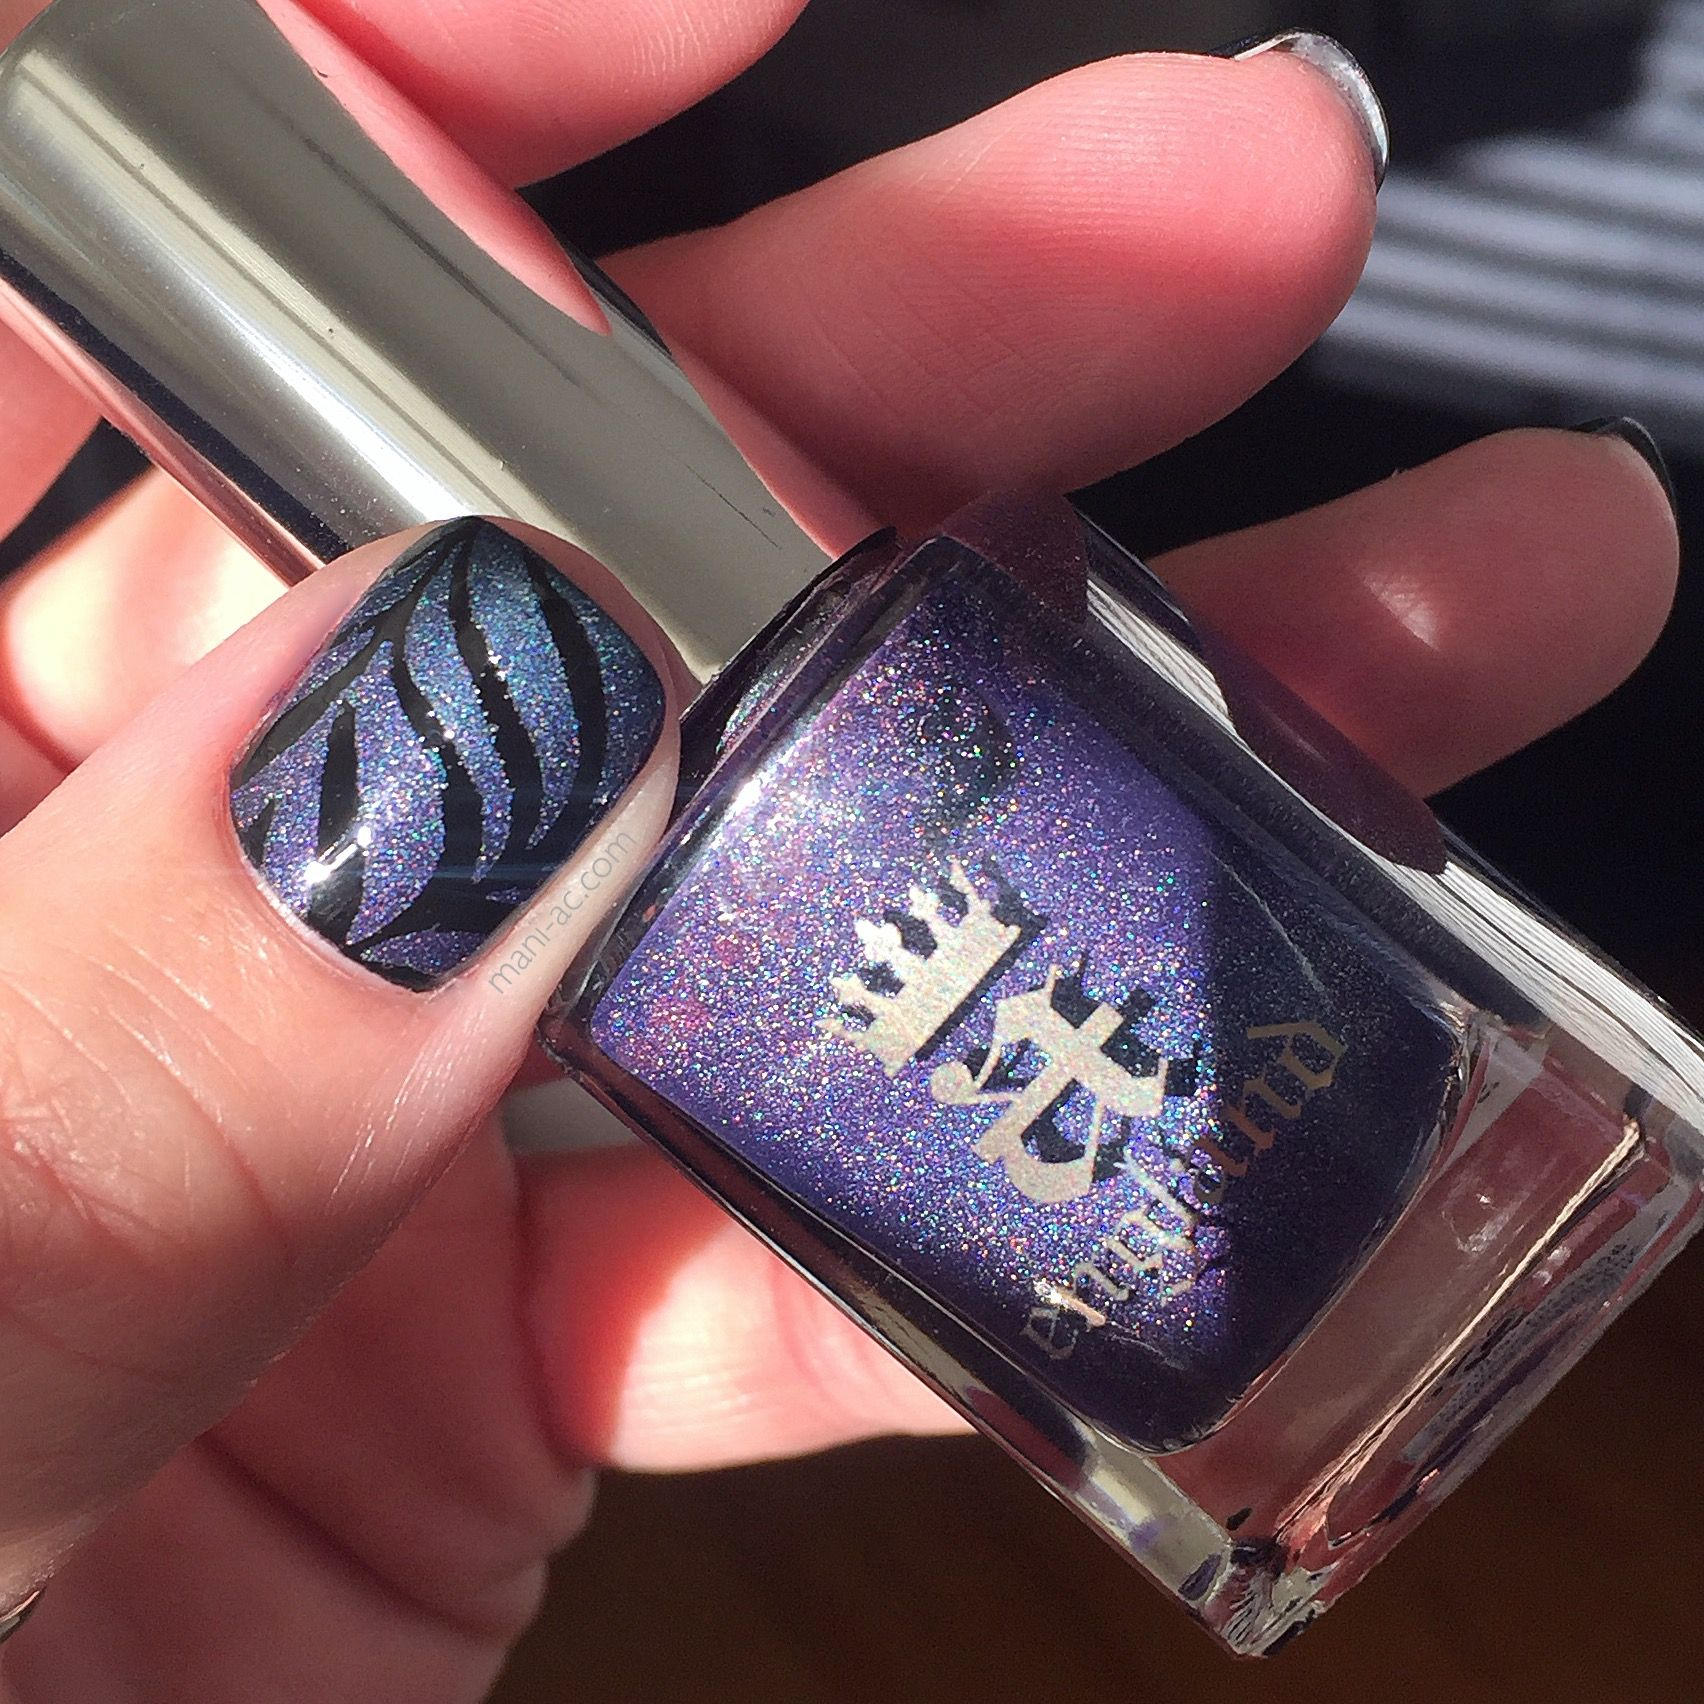 Subtle faded mani: A England - Lady of the Lake, and Proserpine, Essie - Licorice, Bundle Monster Nail Vinyls, a Seche Vite - Dry Fast Top Coat